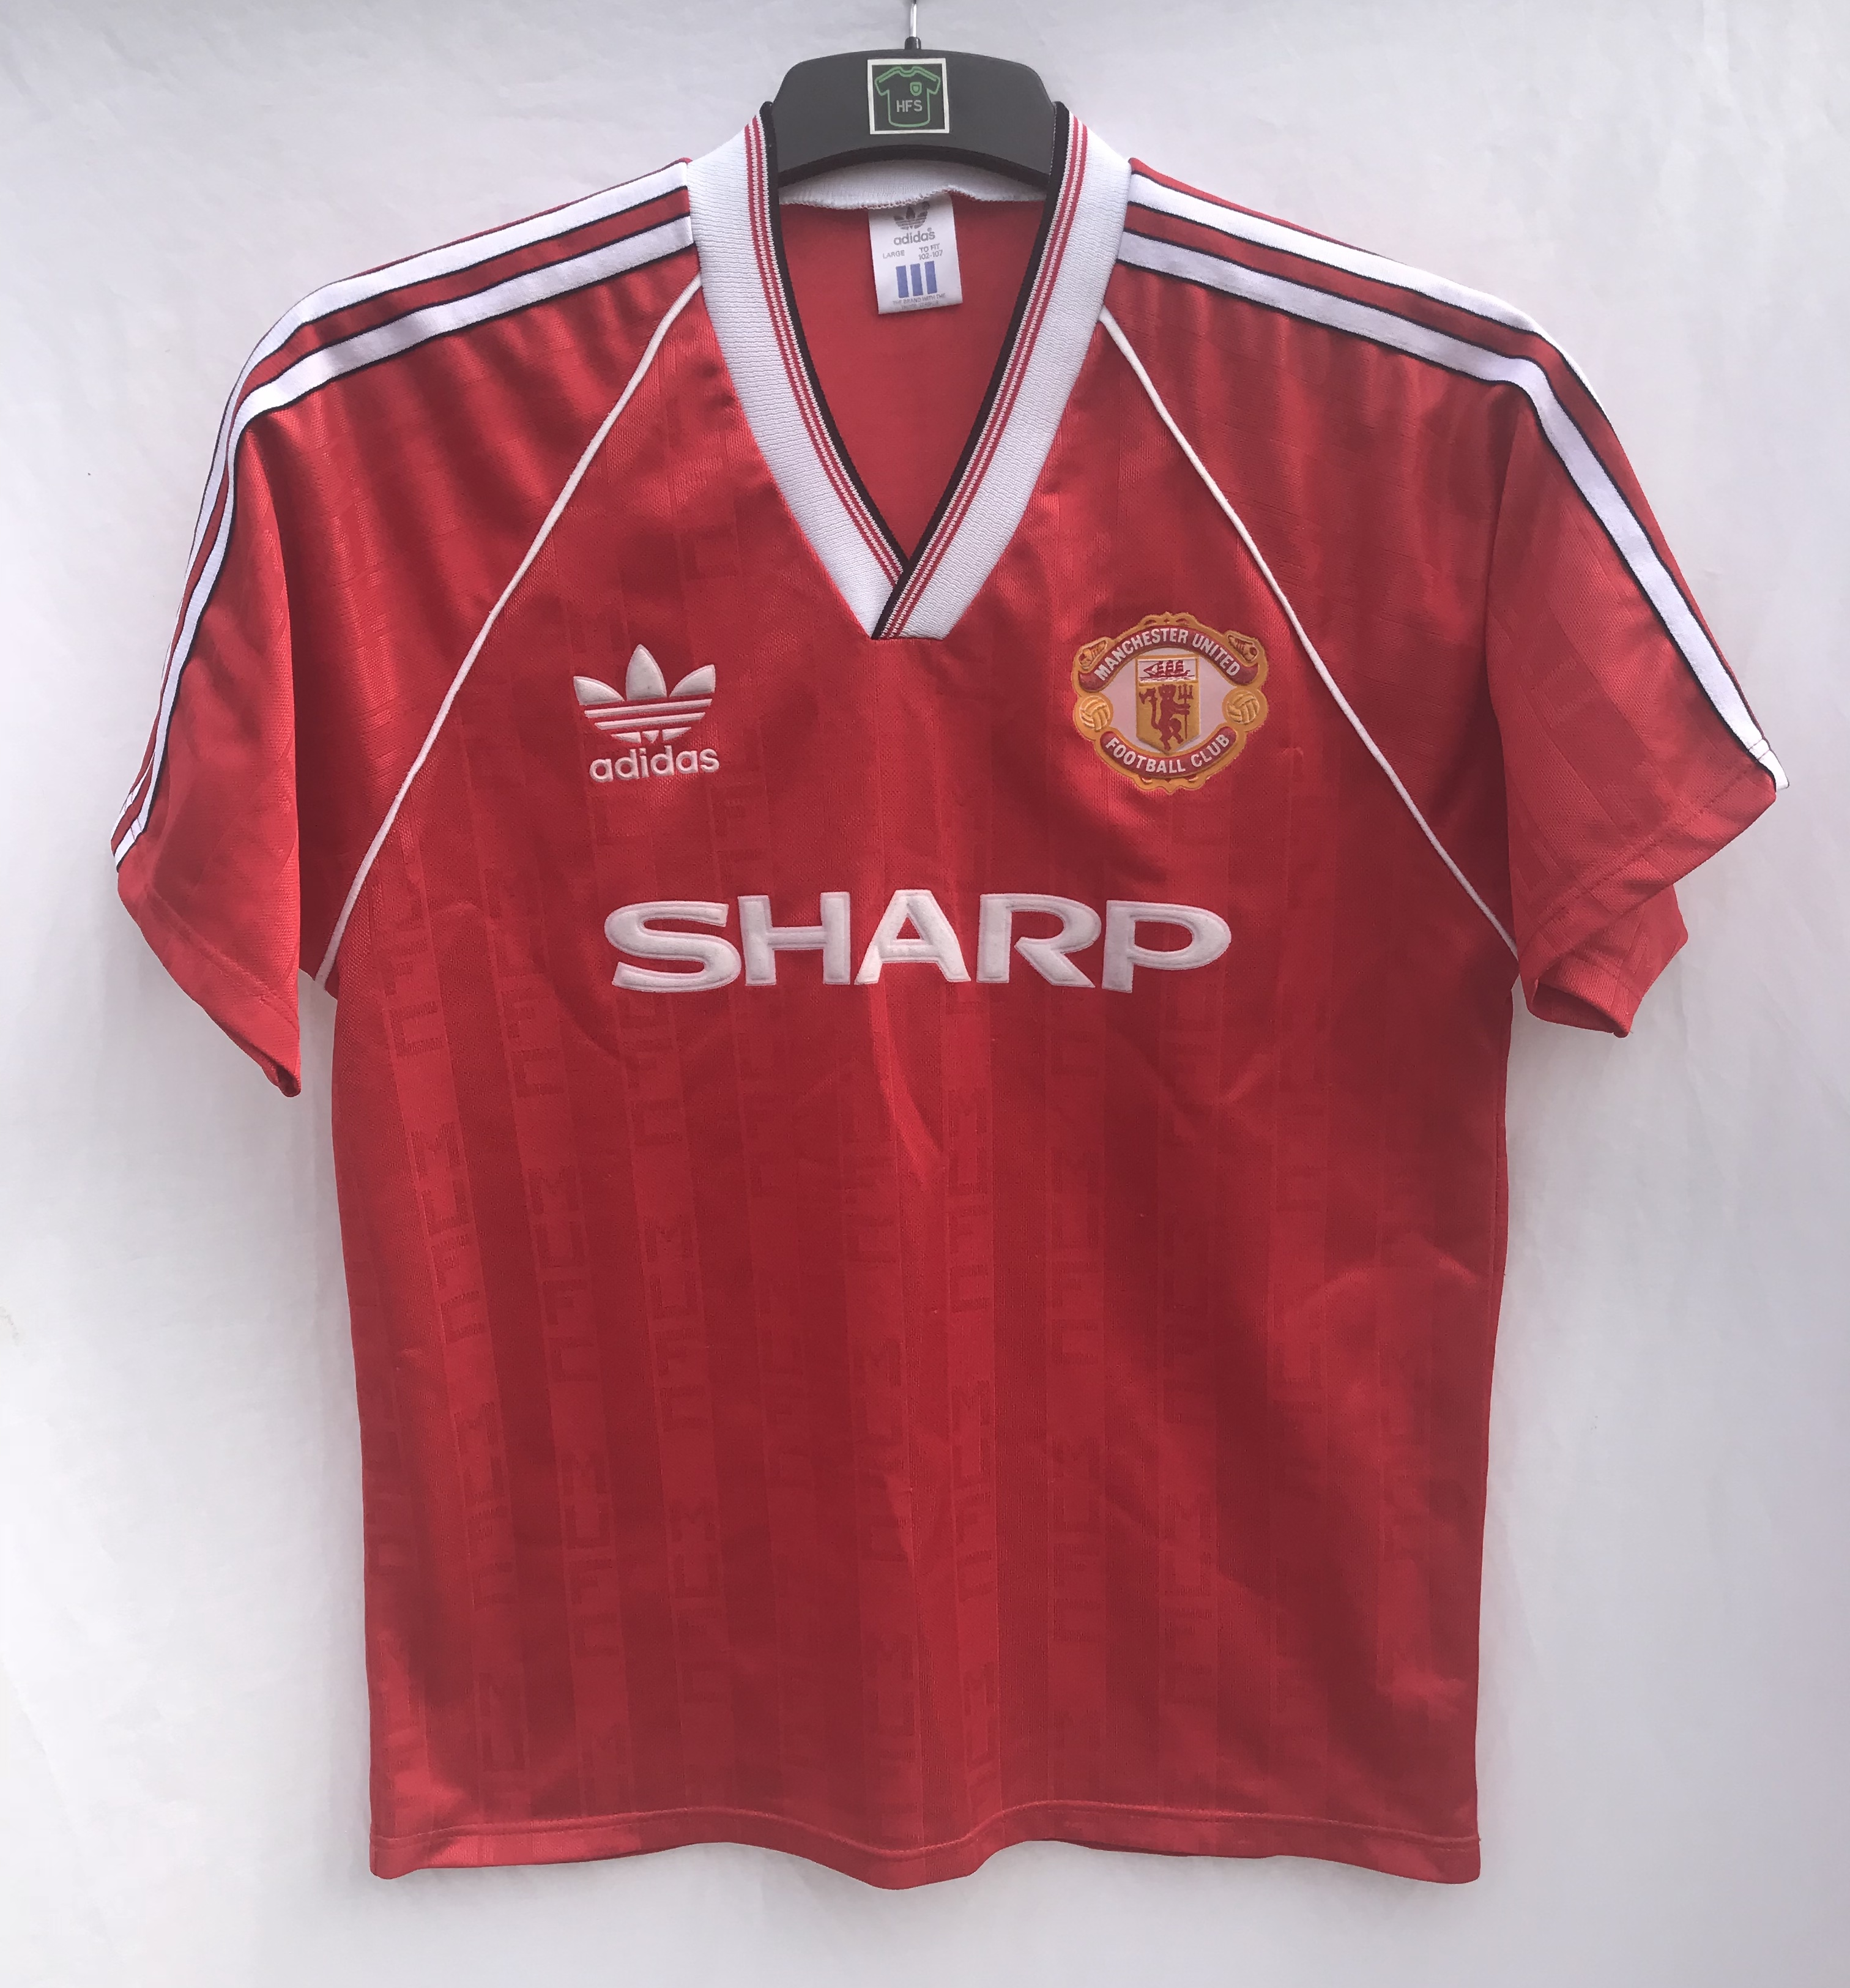 827a47766d1 Manchester United Home Football Shirt 1988 90 Adults Large Adidas. 🔍.  instock